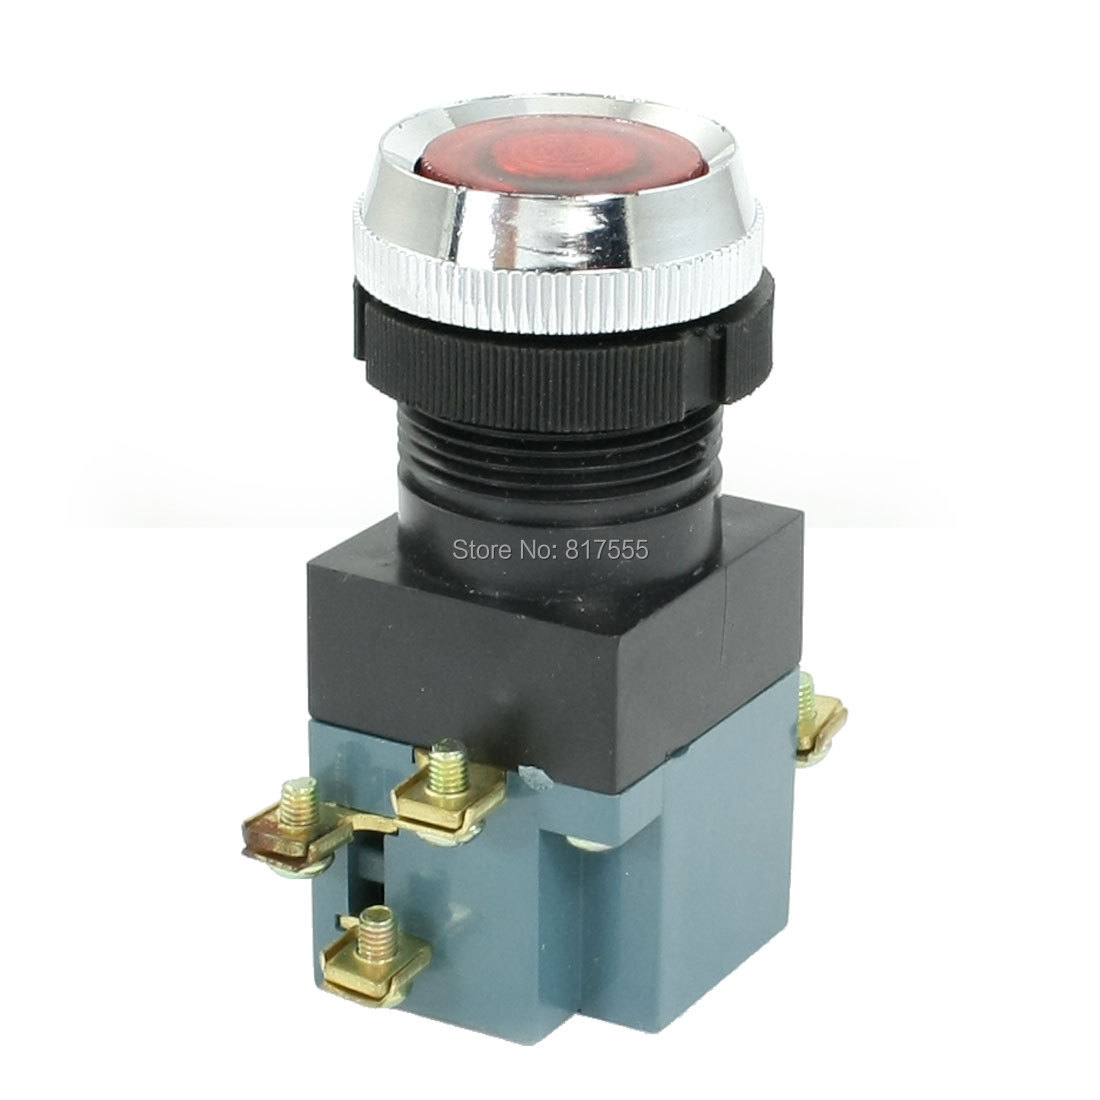 Diameter 22mm AC380V 5A Indicater Light ON OFF START STOP Momentary Push Button Switch(China (Mainland))